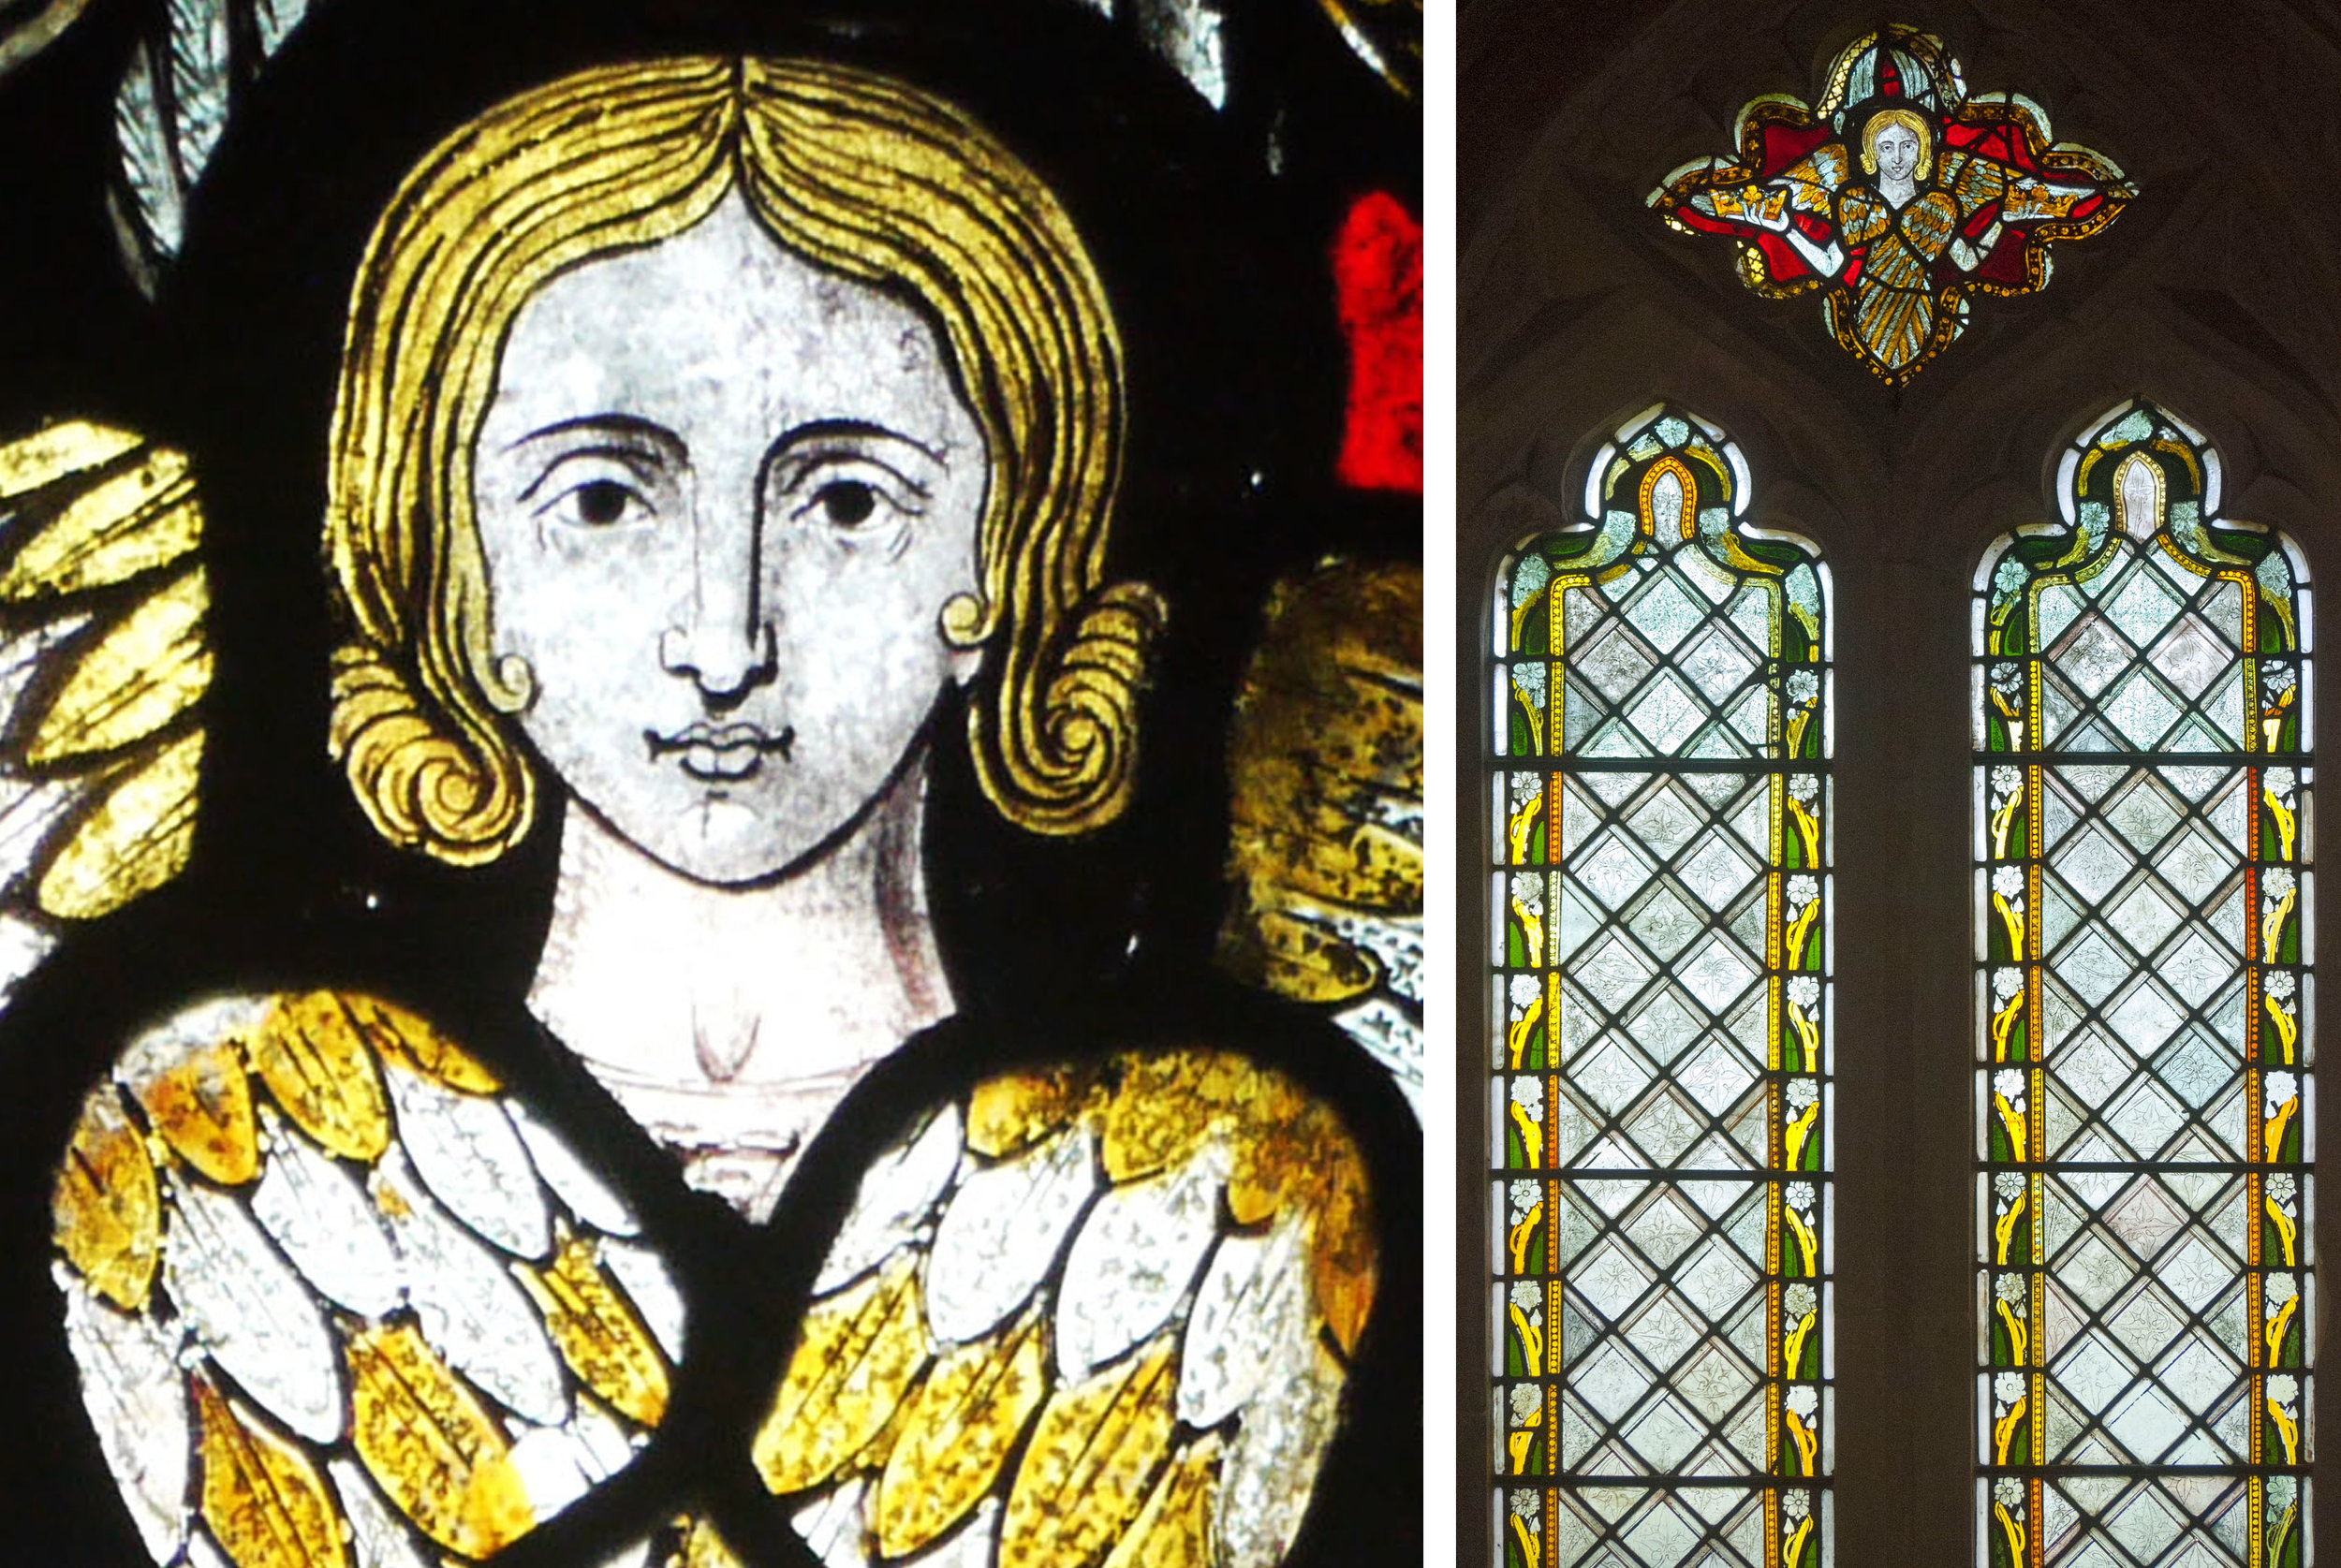 Face of the seraph: window on north side of chancel - chancel built around 1340